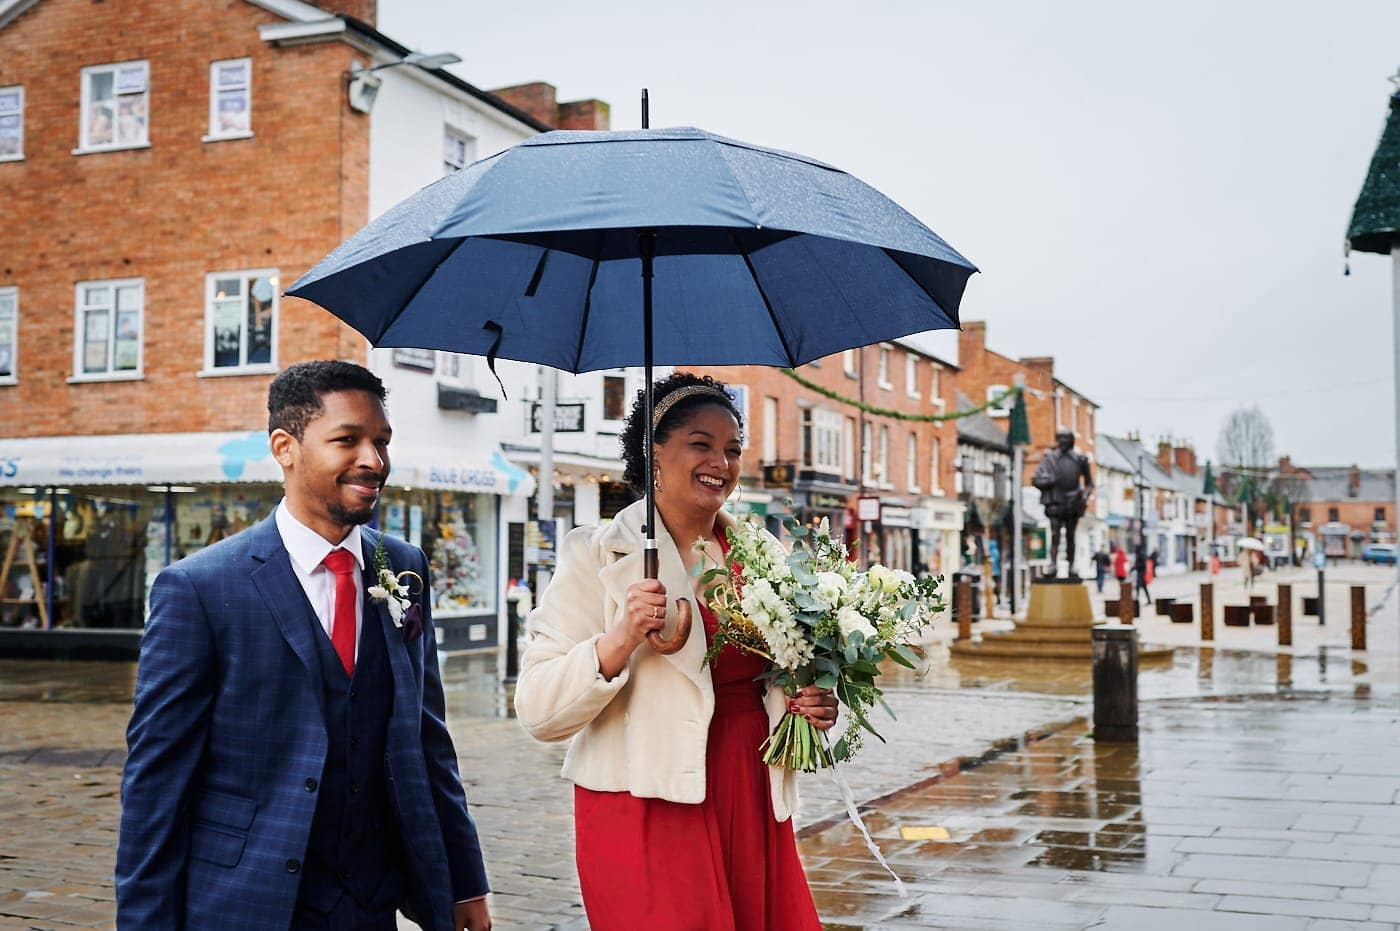 Bride and groom arrive together at The Henley Room in Stratford-upon-Avon for small wedding ceremony